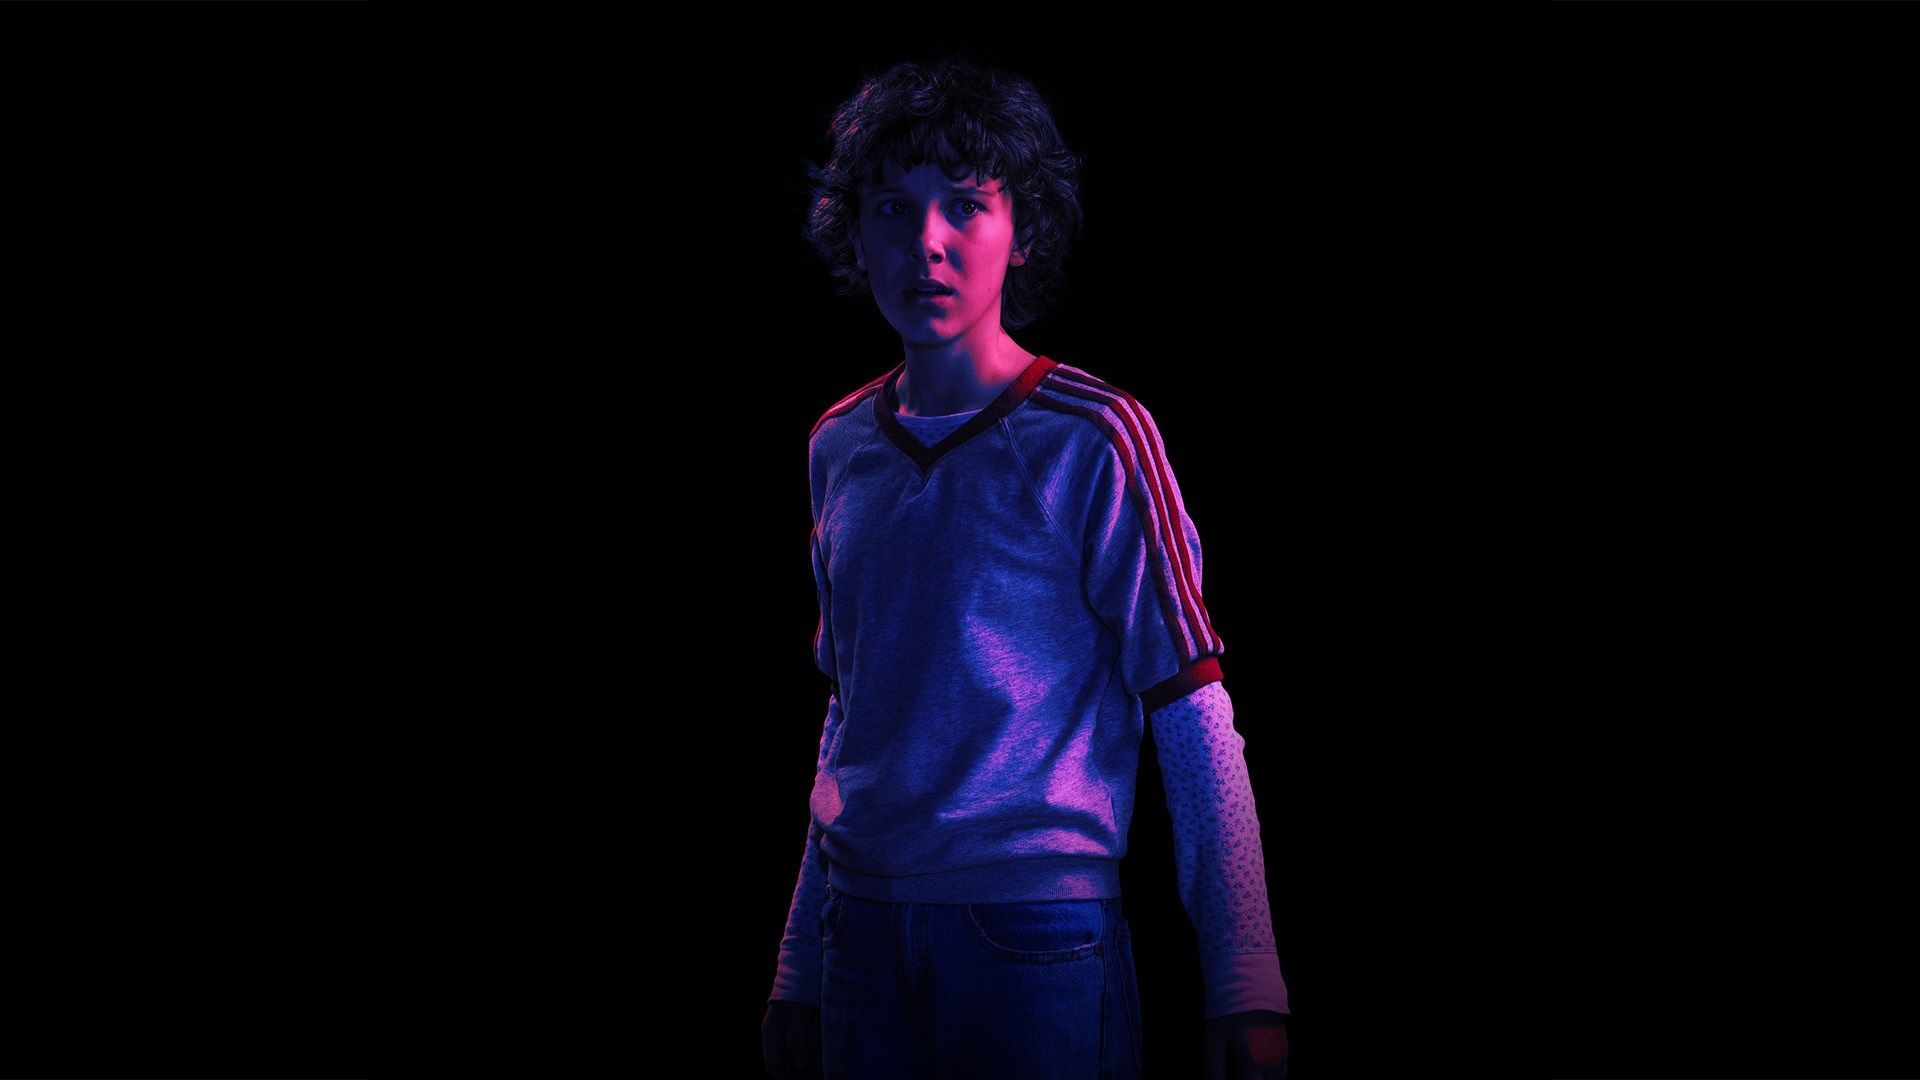 1920x1080 Eleven Stranger Things Images Free Download En